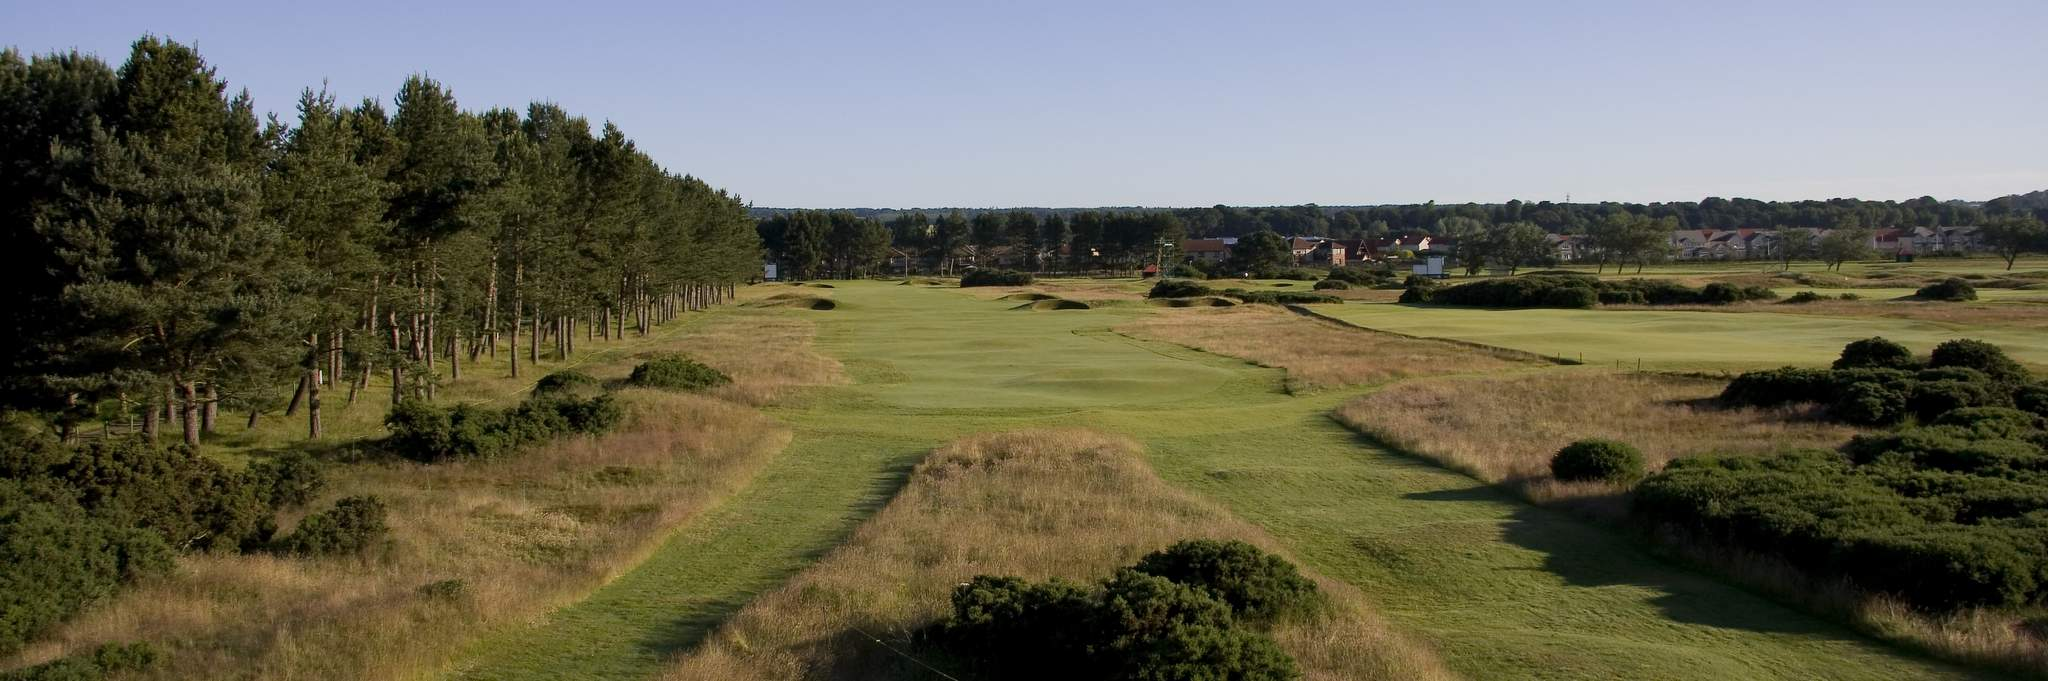 Golf in Dumfries and Galloway